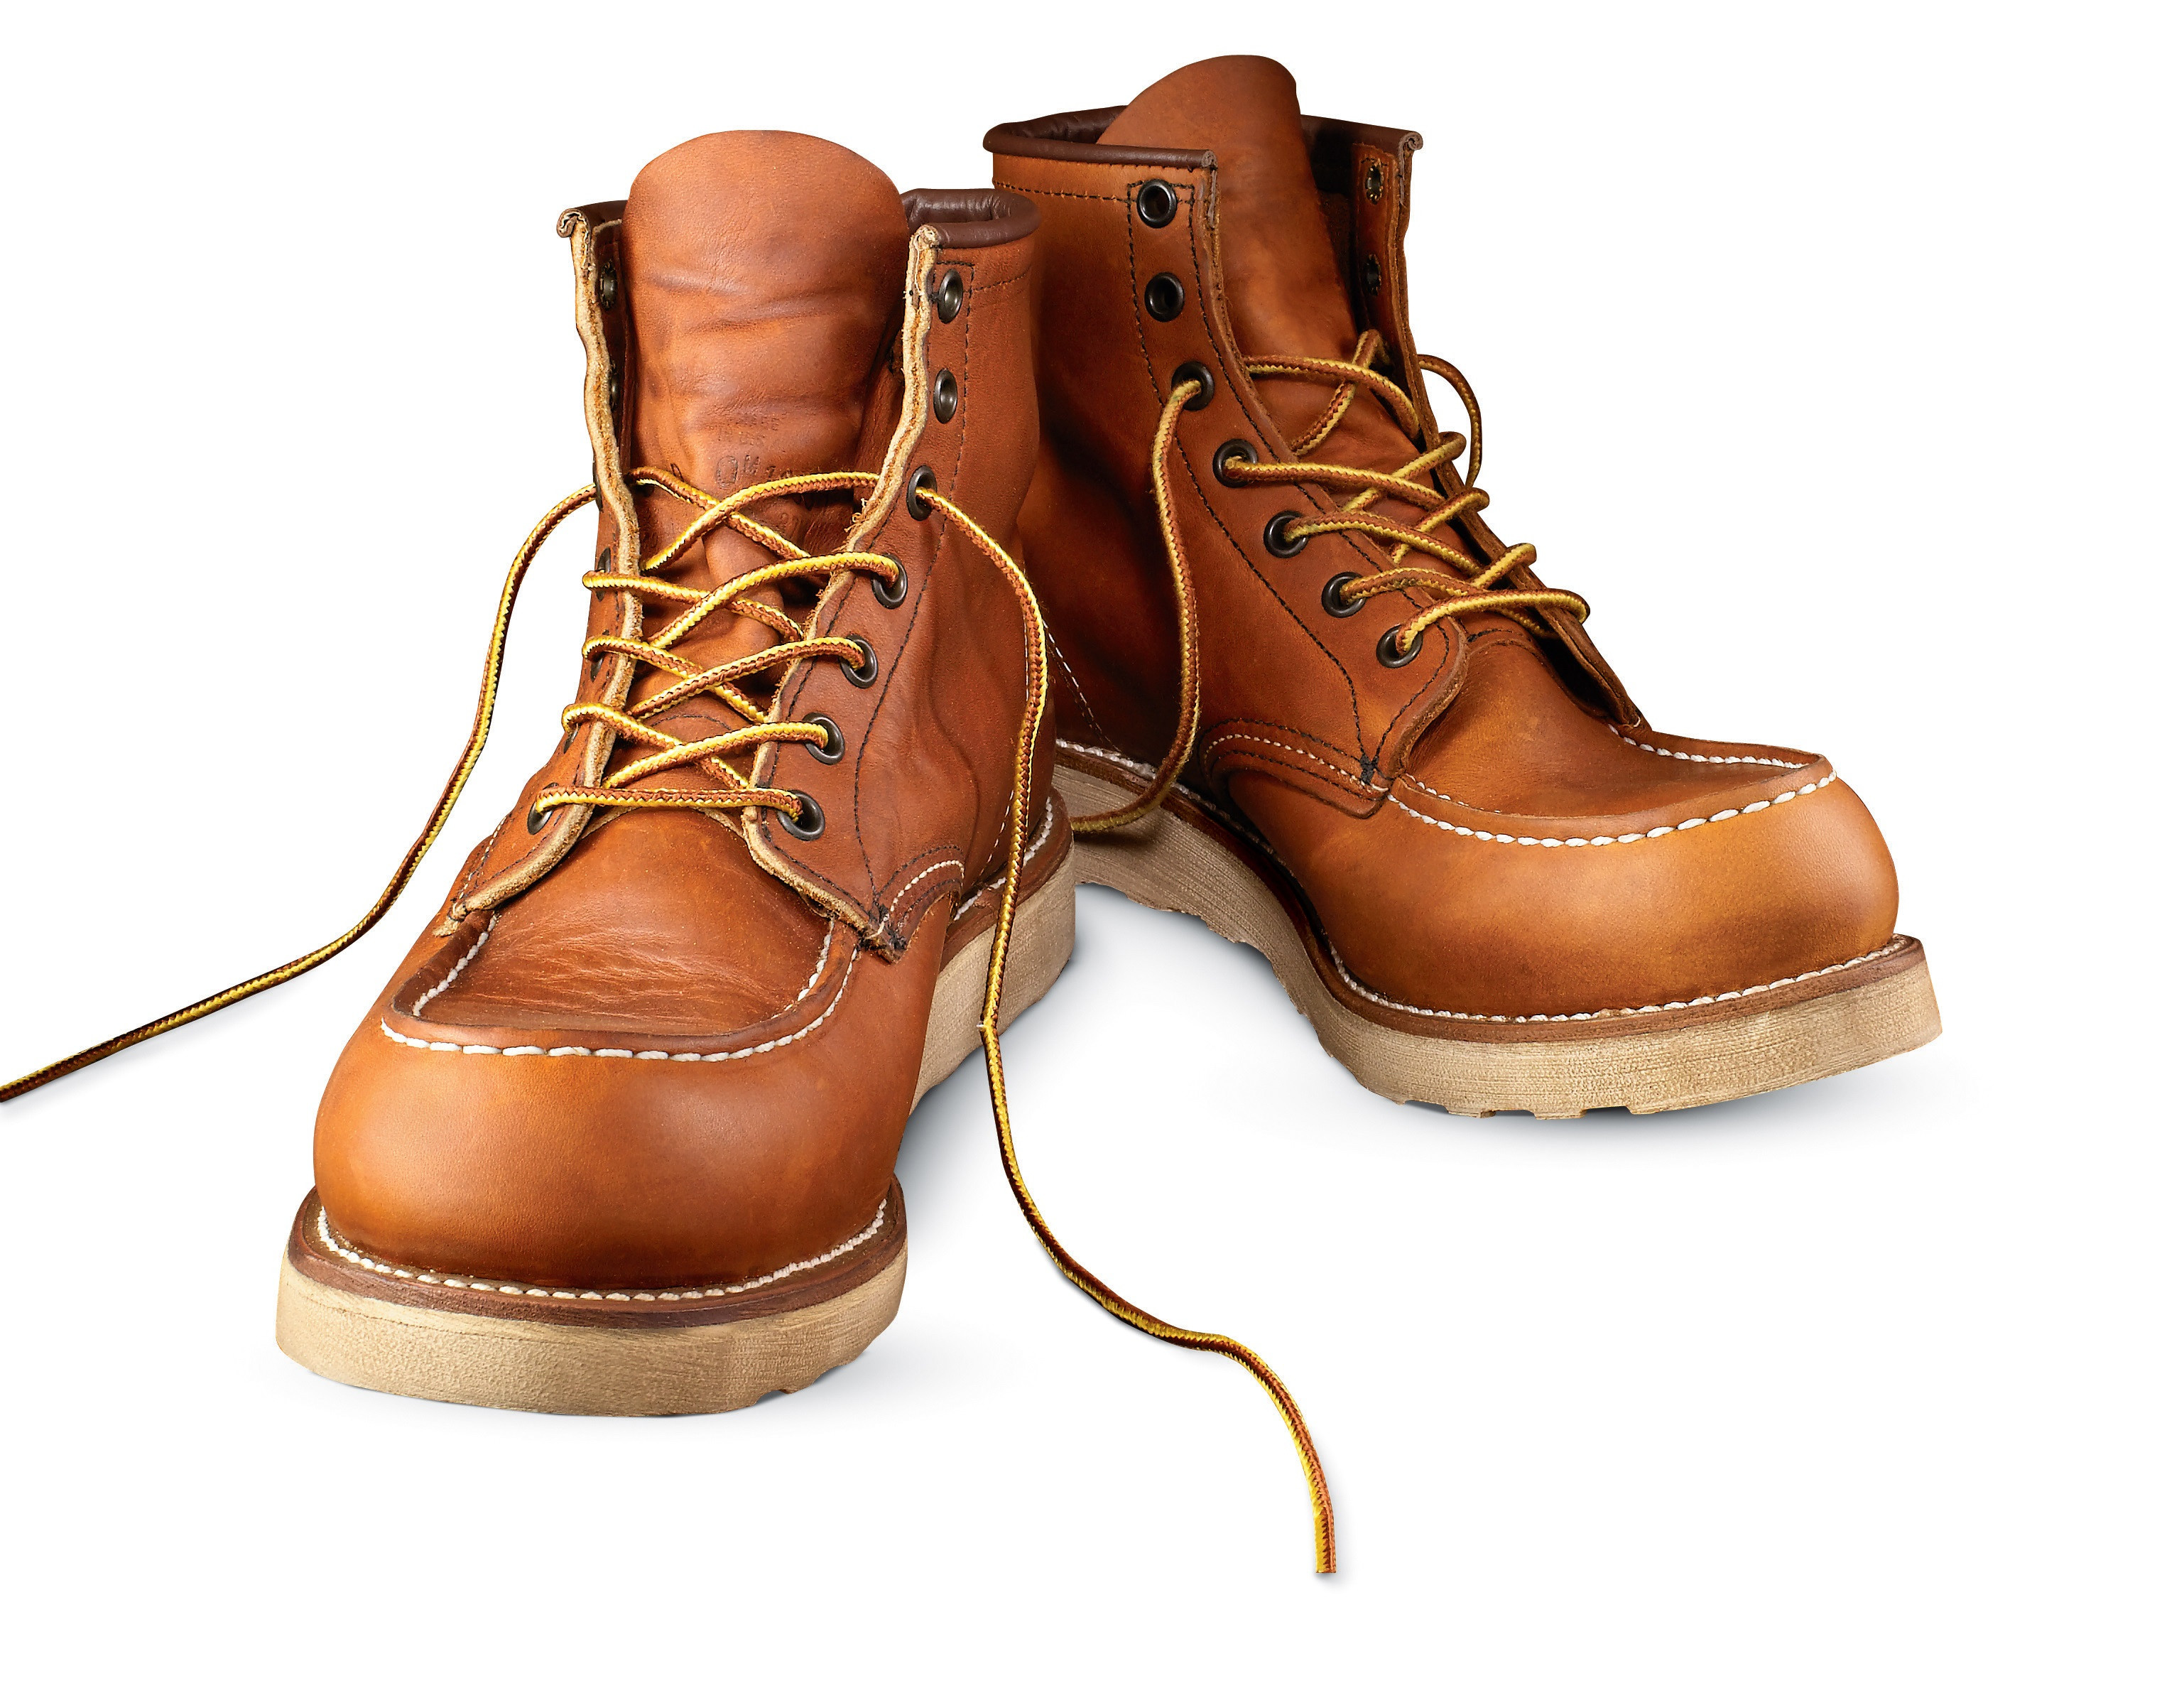 timberland hardwood flooring prices of stomp in style work boots for safety comfort and surefootedness within stomp in style work boots for safety comfort and surefootedness builder magazine work wear and gear work boots